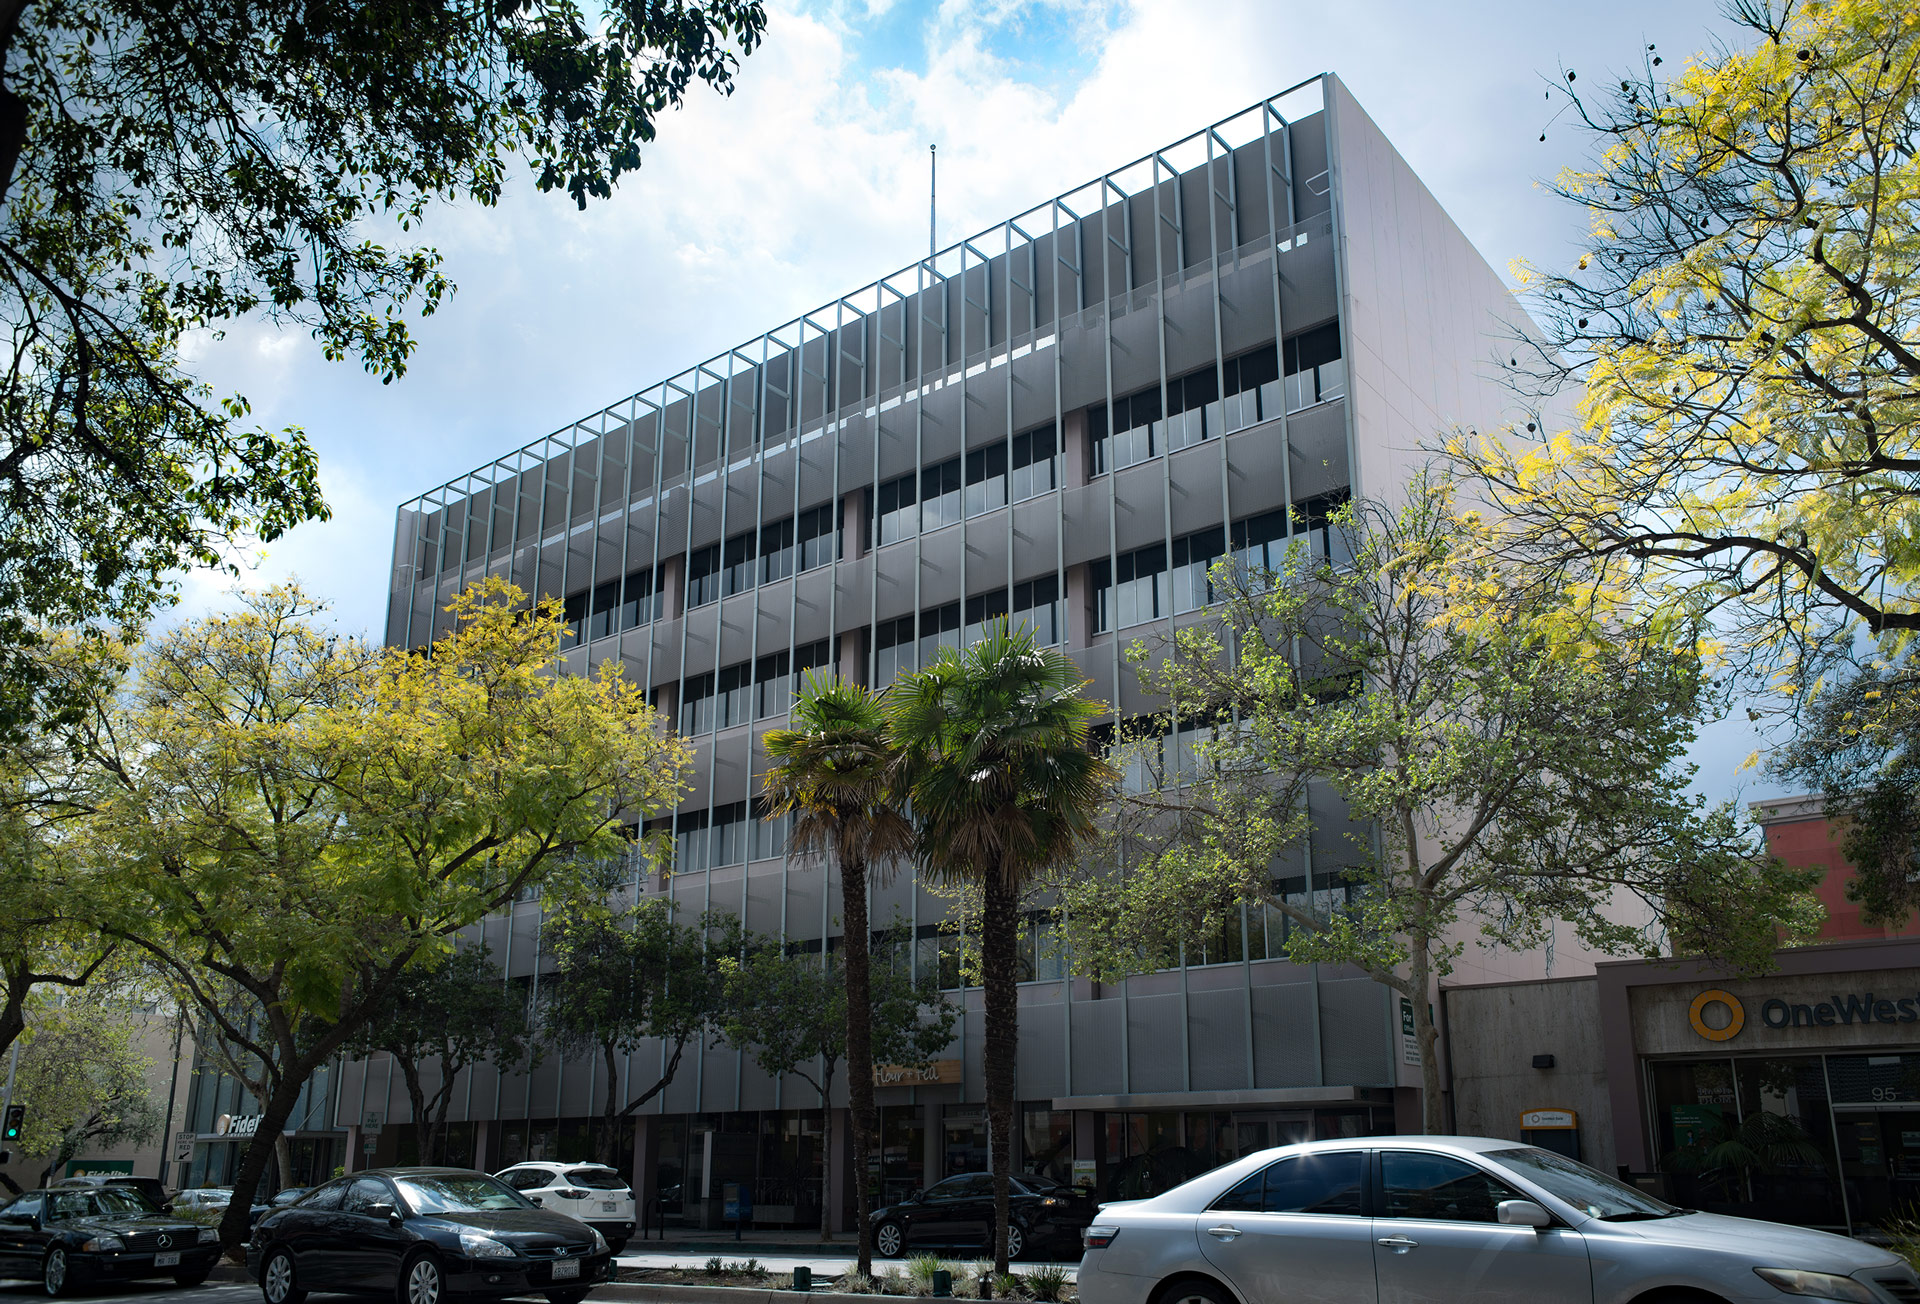 Pasadena FIVE-STORY OFFICE / RETAIL BUILDING De Pietro Holdings